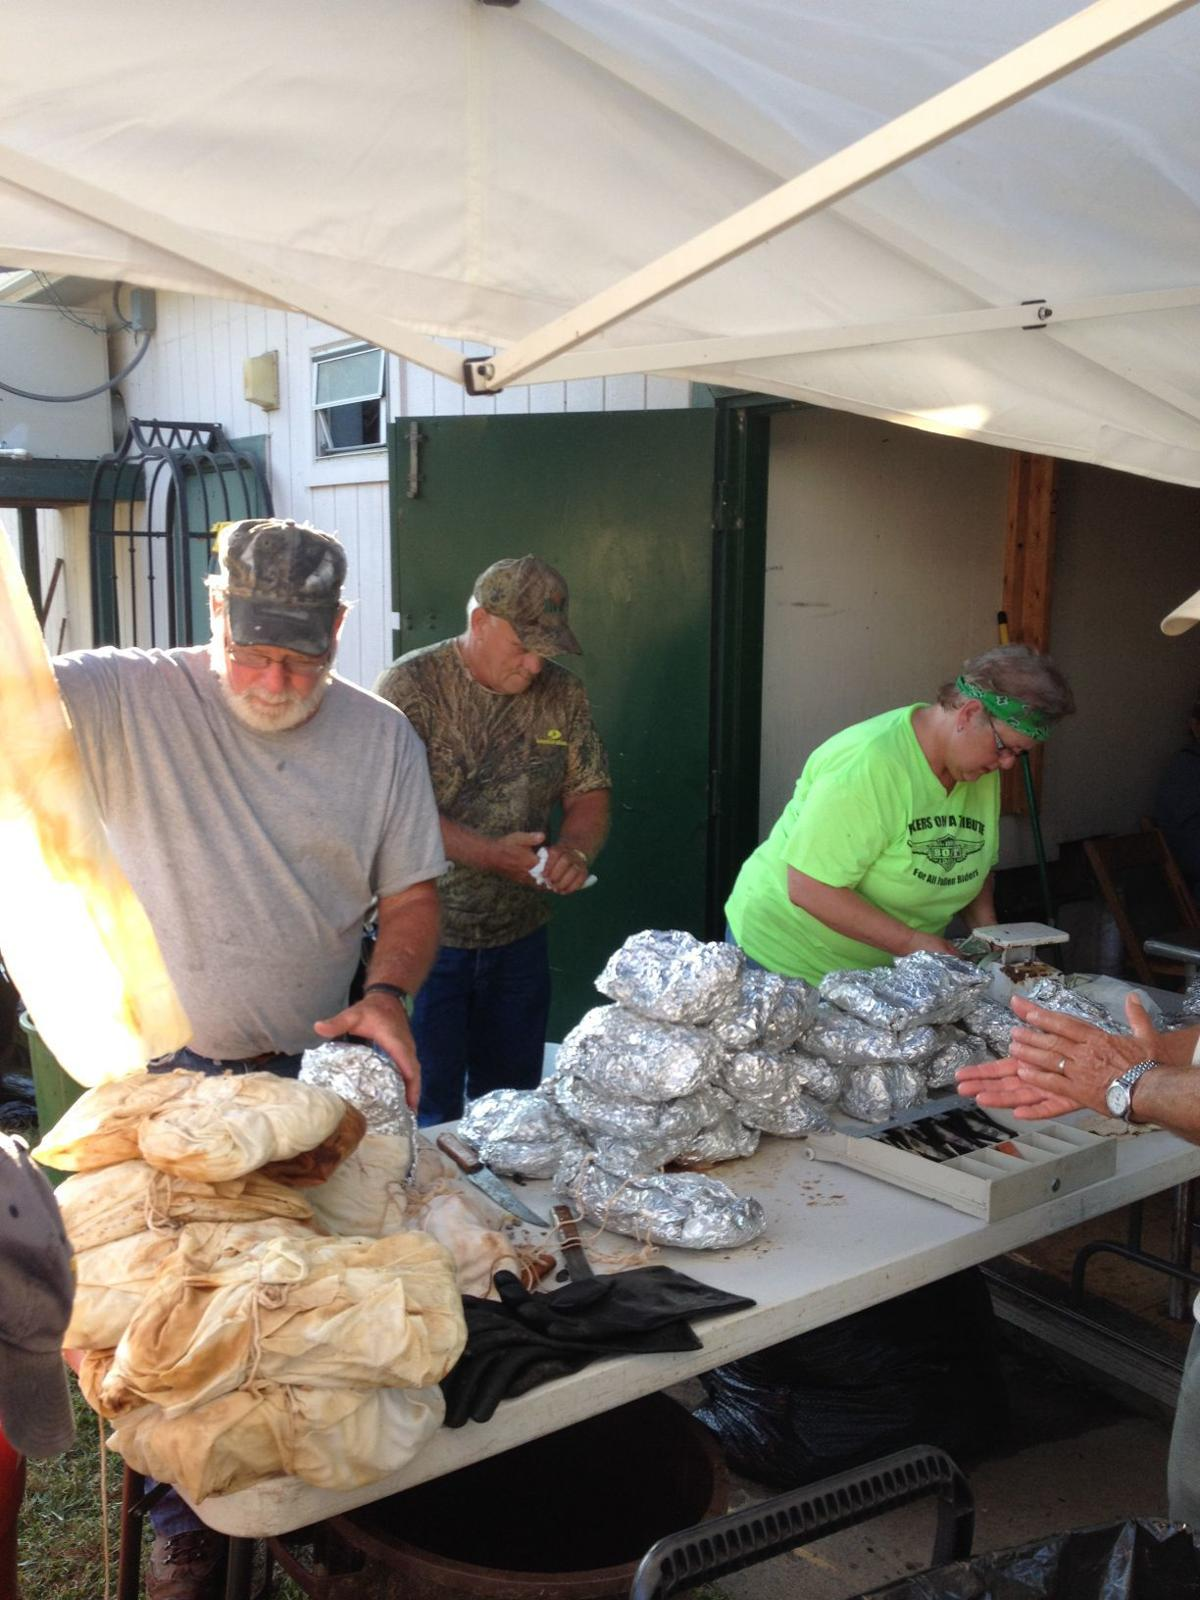 Volunteers help wrap the meat for cooking